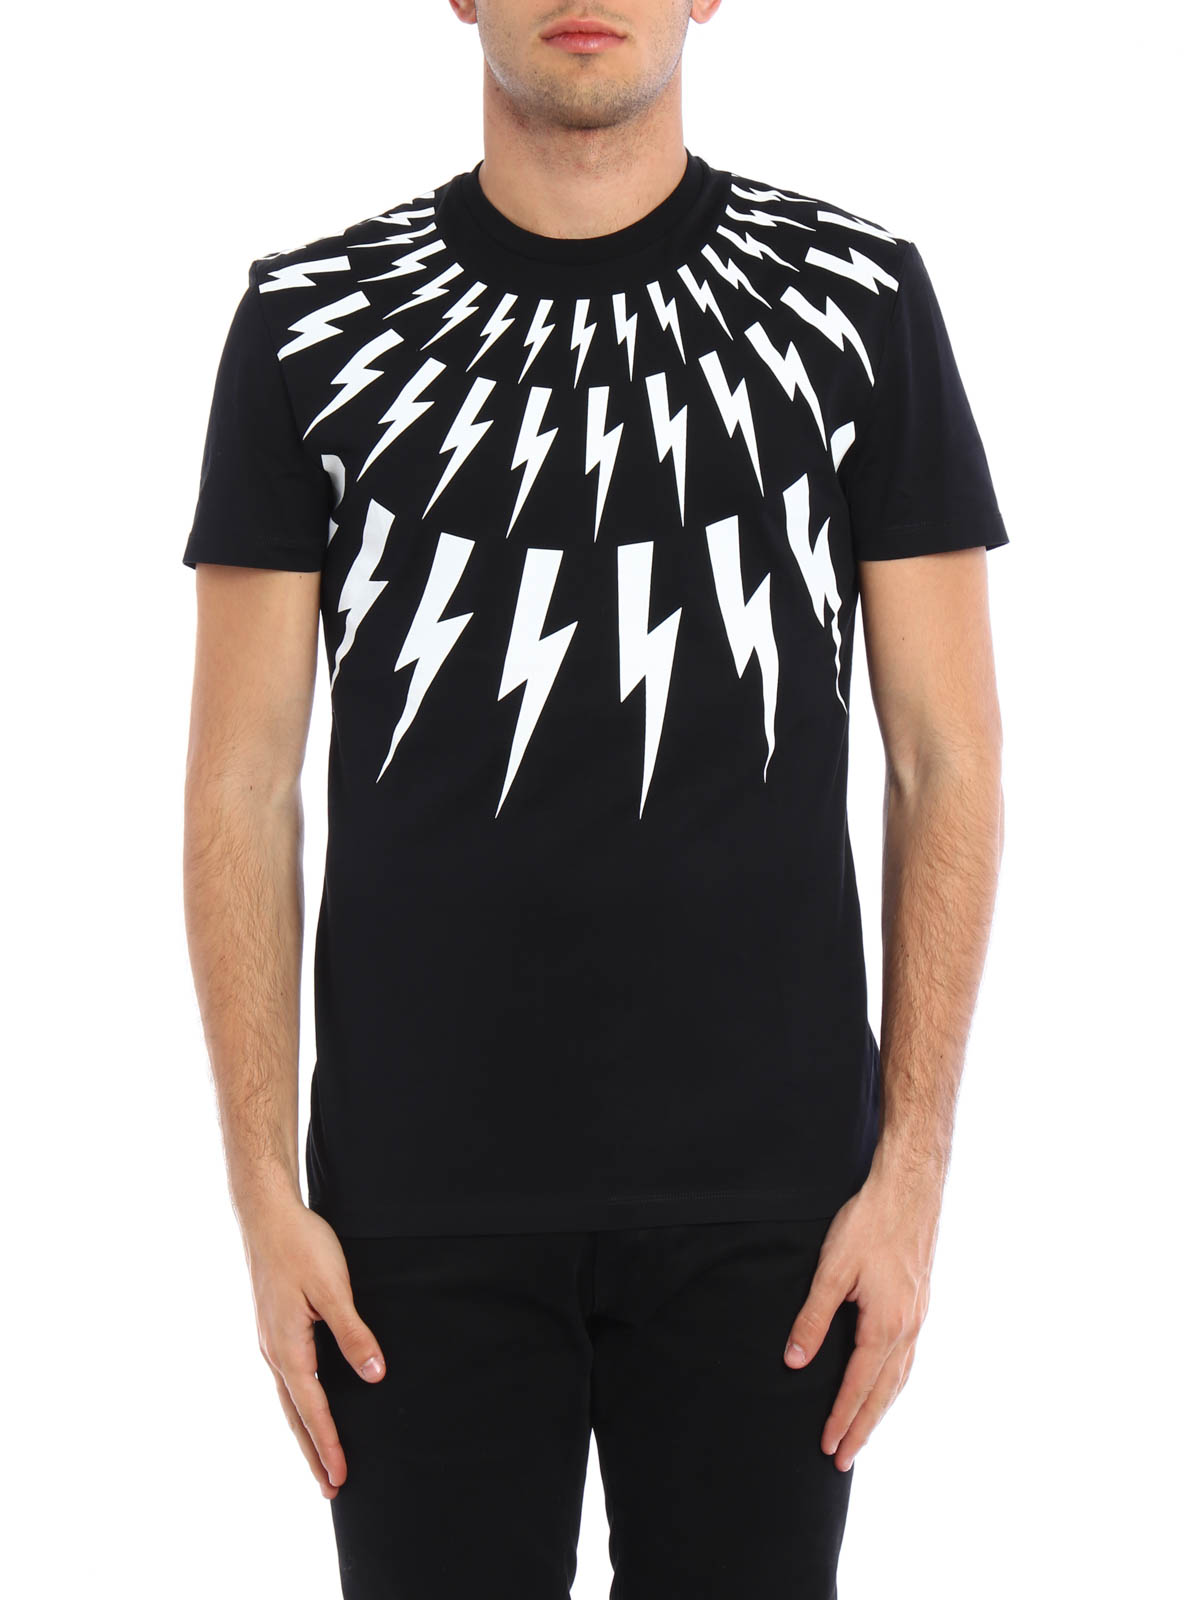 thunderbolt print t shirt by neil barrett t shirts ikrix. Black Bedroom Furniture Sets. Home Design Ideas